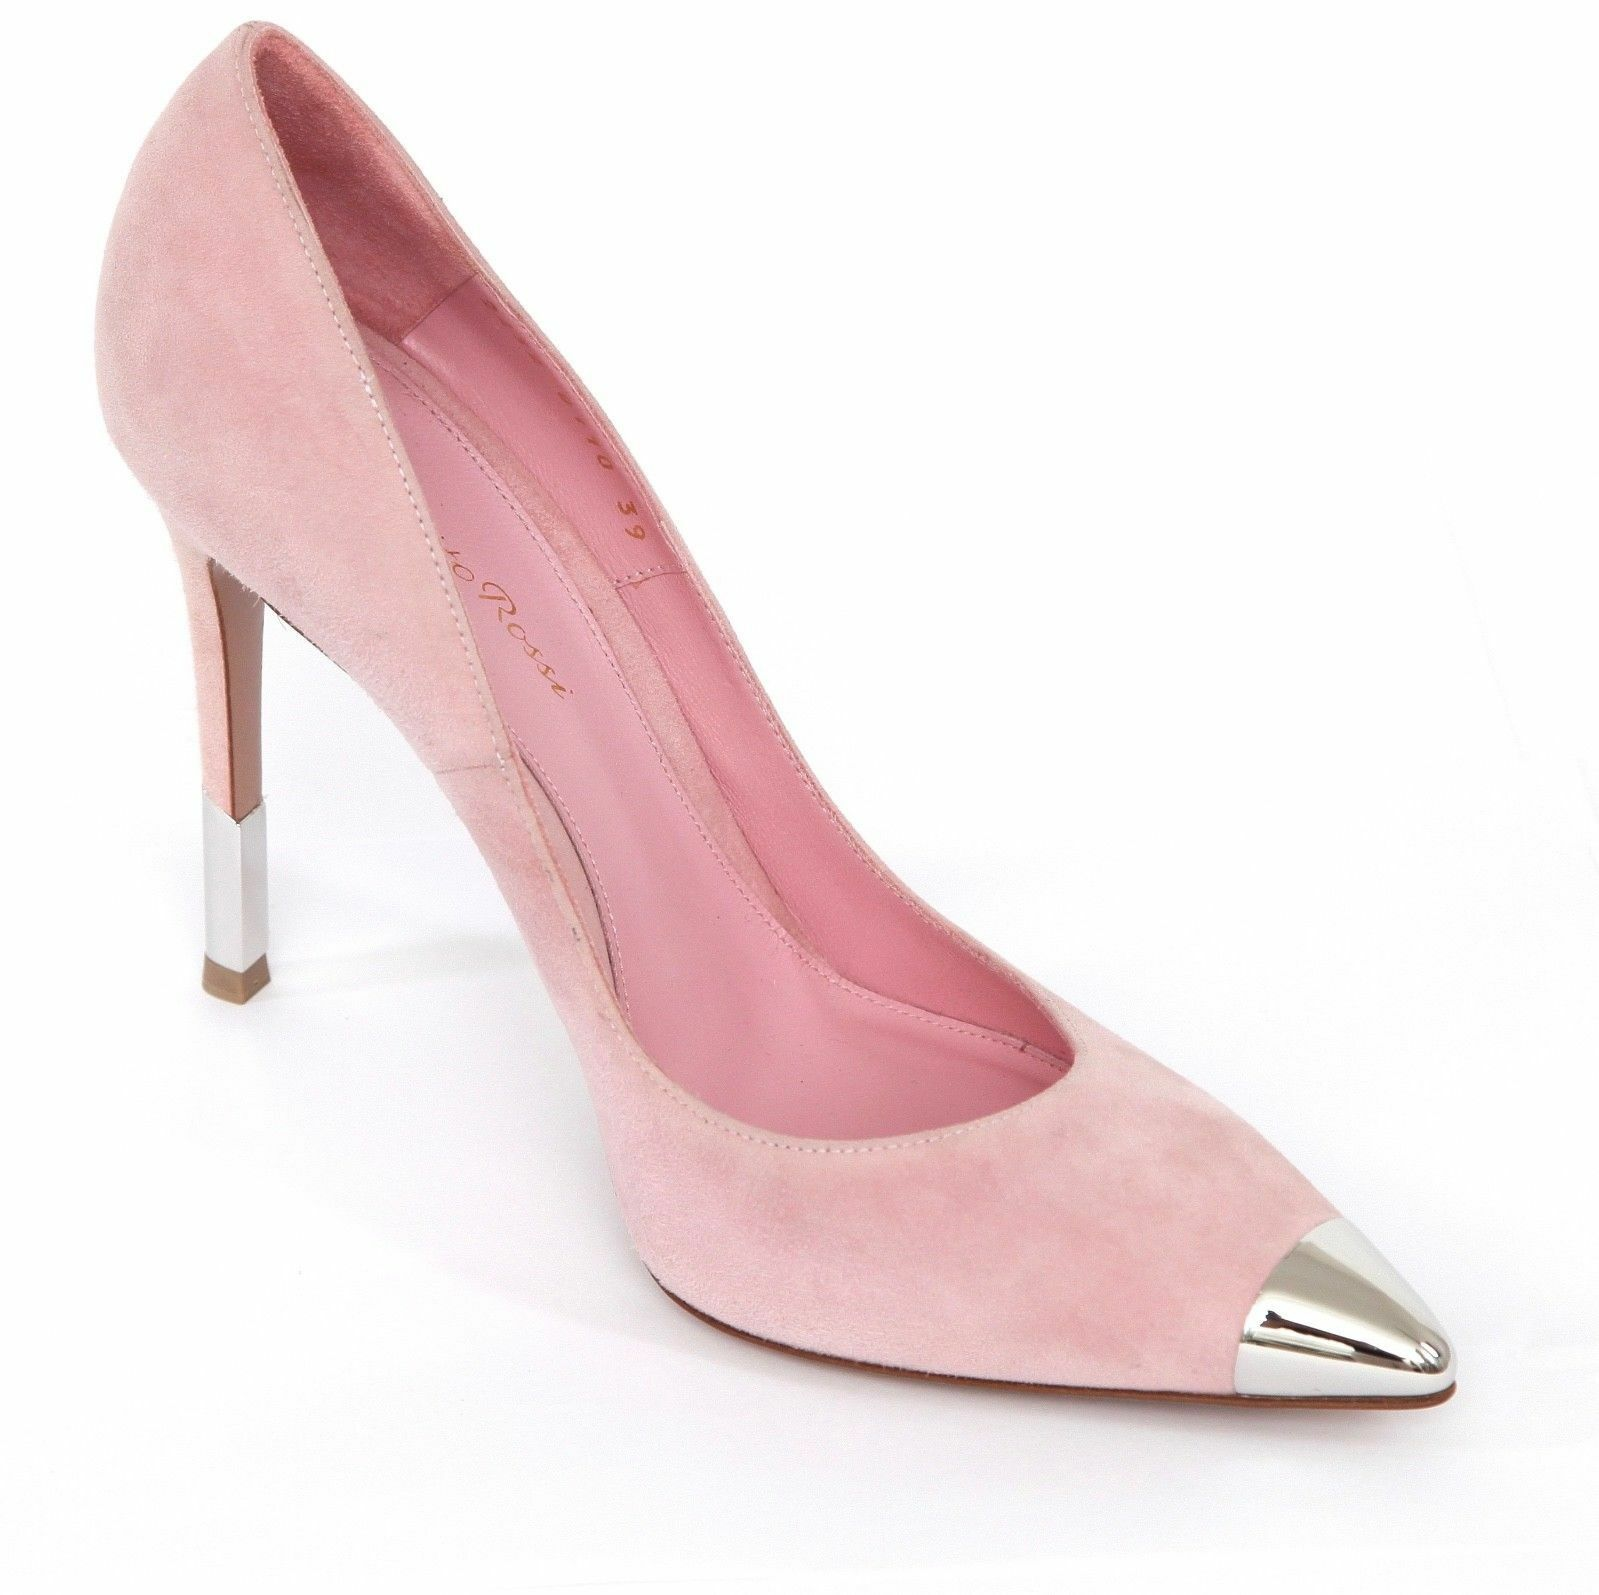 GIANVITO ROSSI Rosa Suede D'Orsay Pump Pointed Toe Leather Silber Heel Sz 39